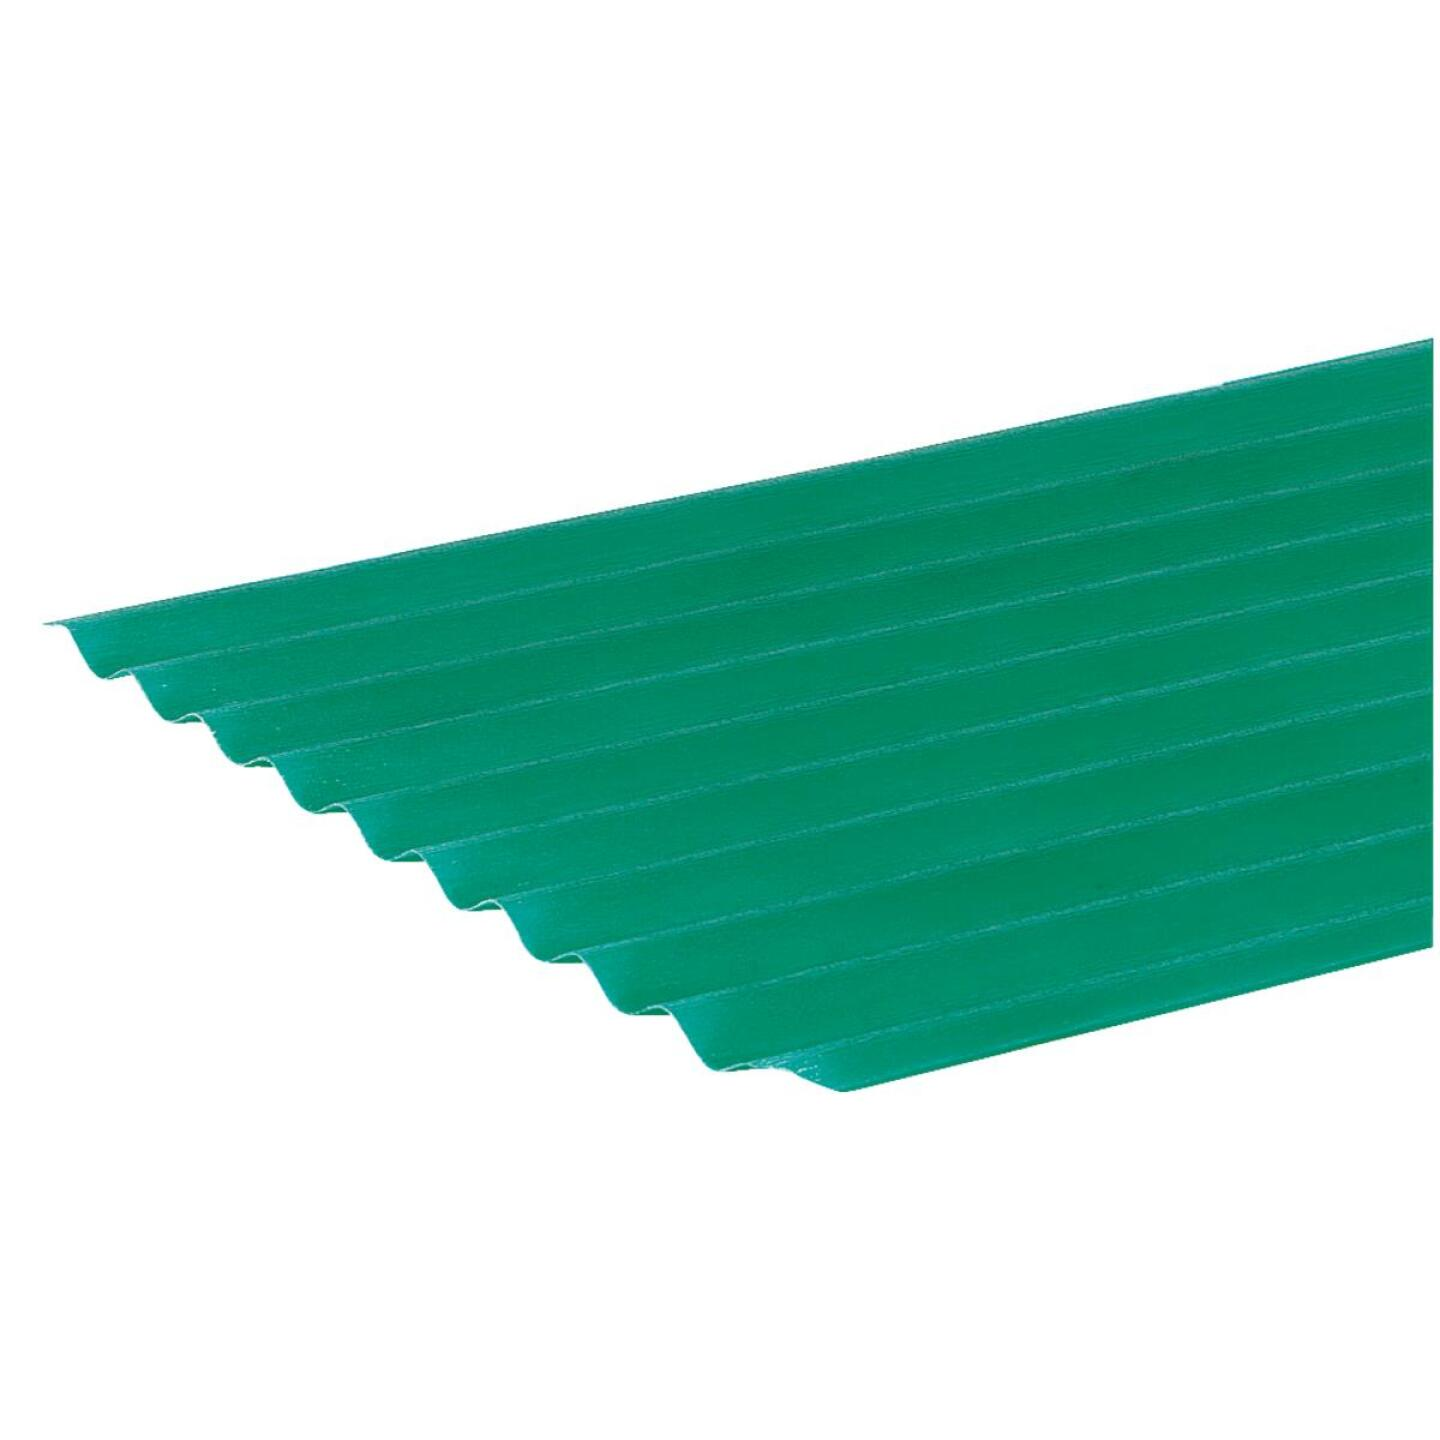 Sequentia WeatherGlaze 26 In. x 8 Ft. Green Round 1-Sided Fiberglass Corrugated Panels Image 2